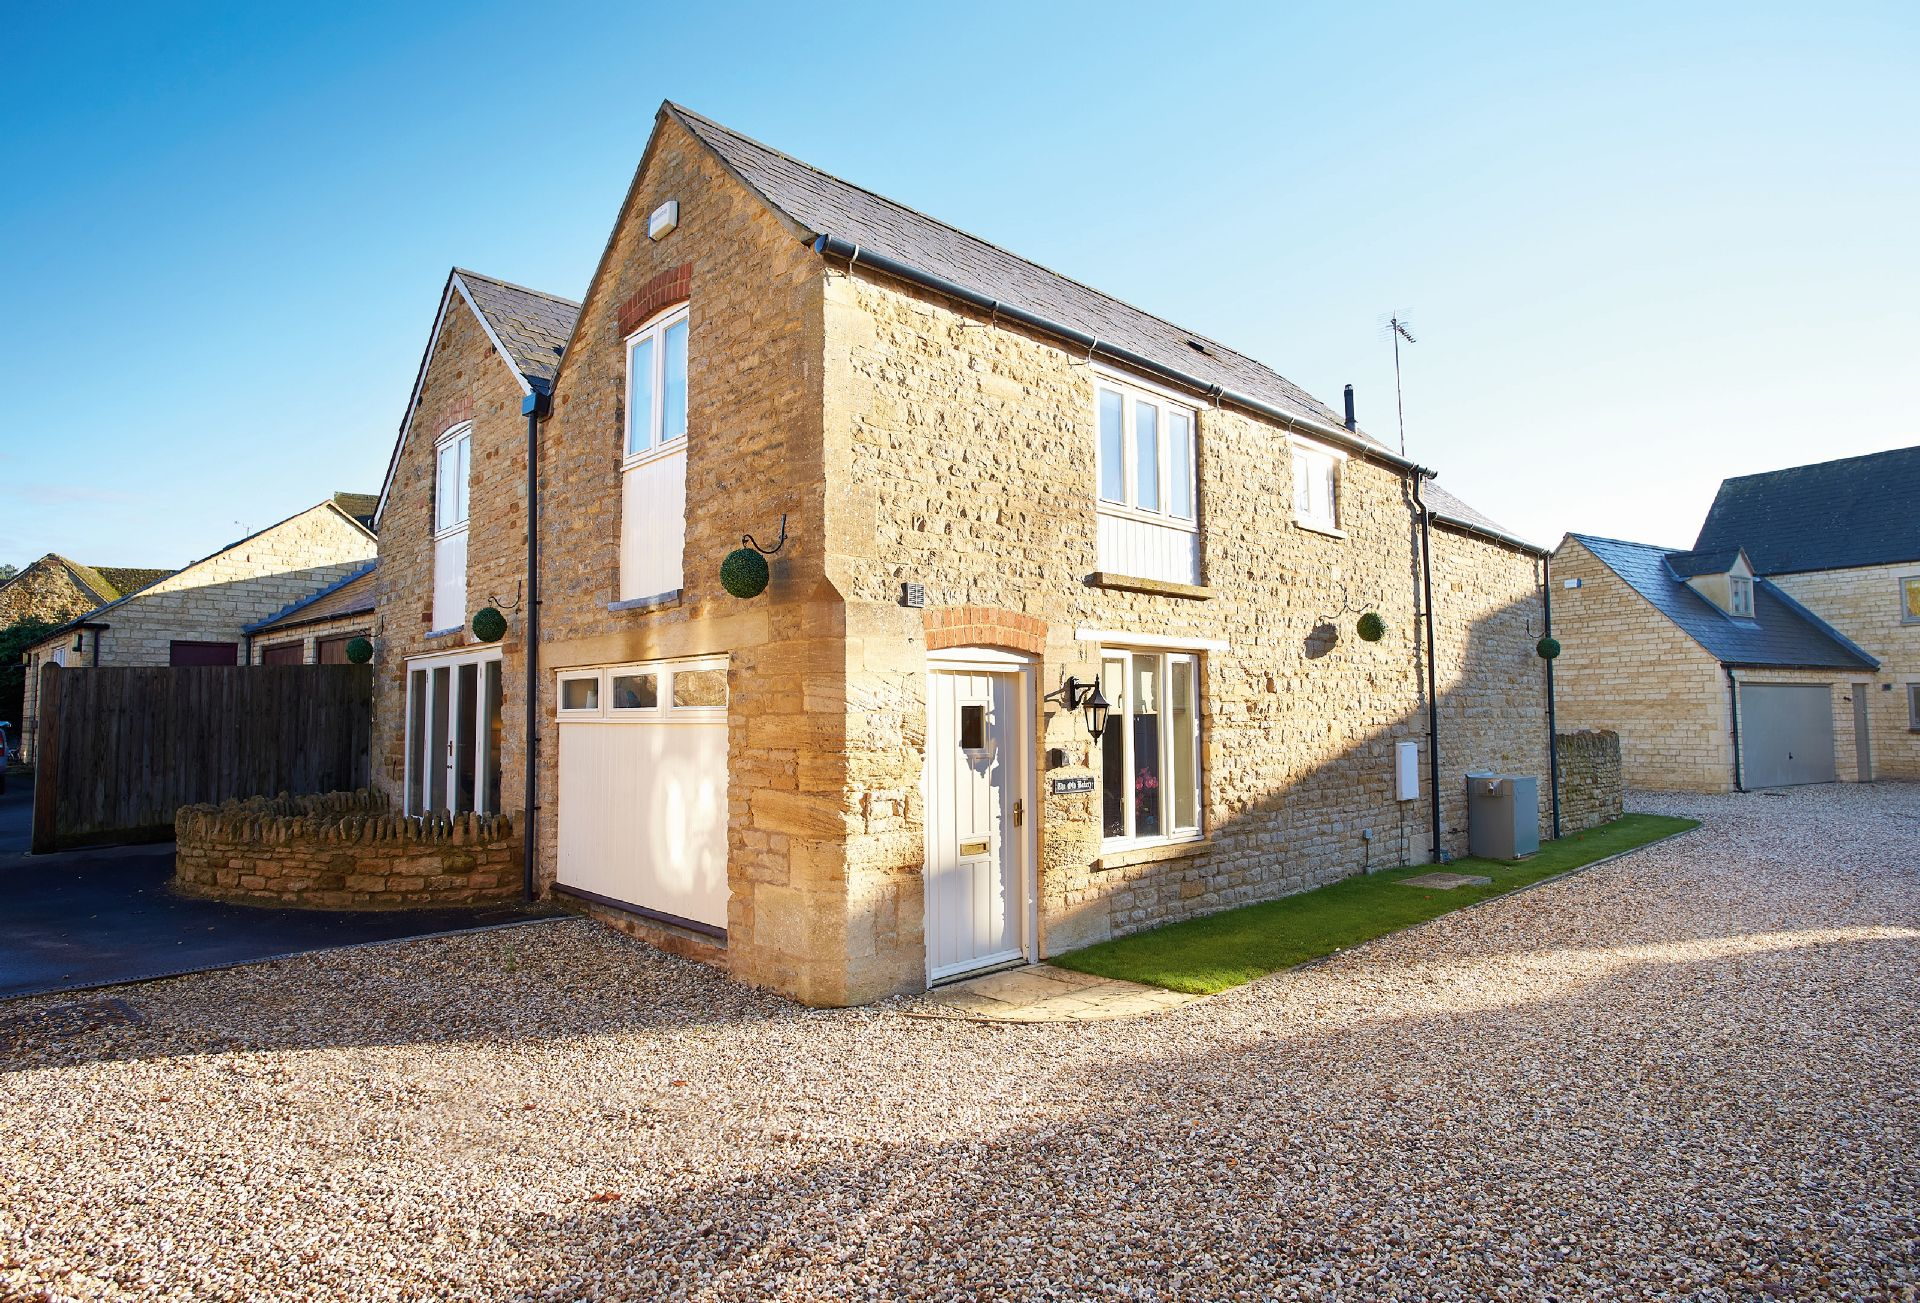 The Old Bakery with accommodation for six guests is a converted, period beamed detached stone property that lies near the green in the village of Kingham. The village has two highly recommended pubs, The Kingham Plough and The Tollgate Inn